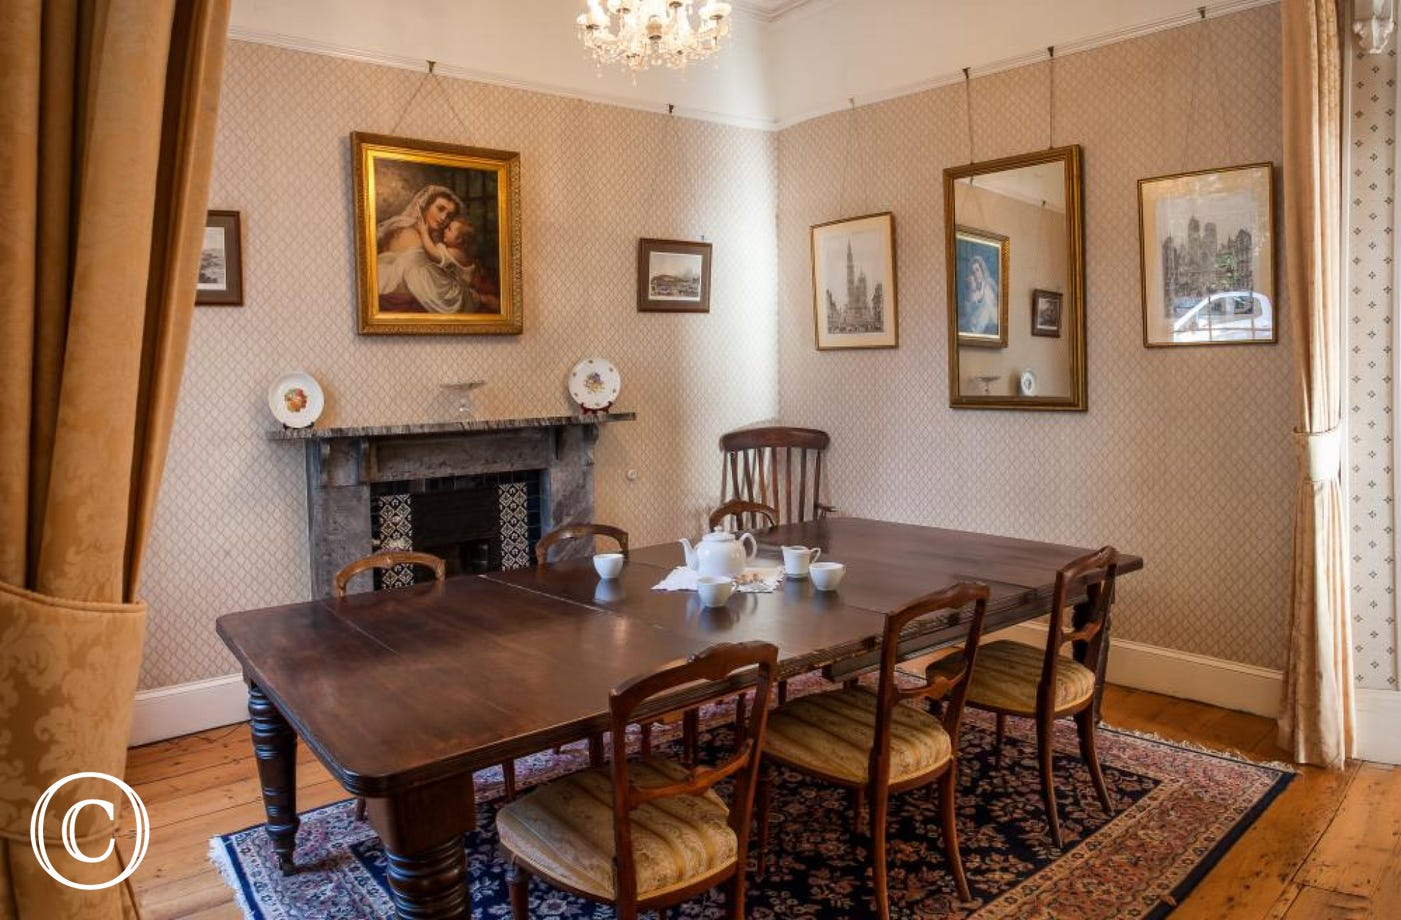 Longcroft House, Torquay - Elegant dining room table